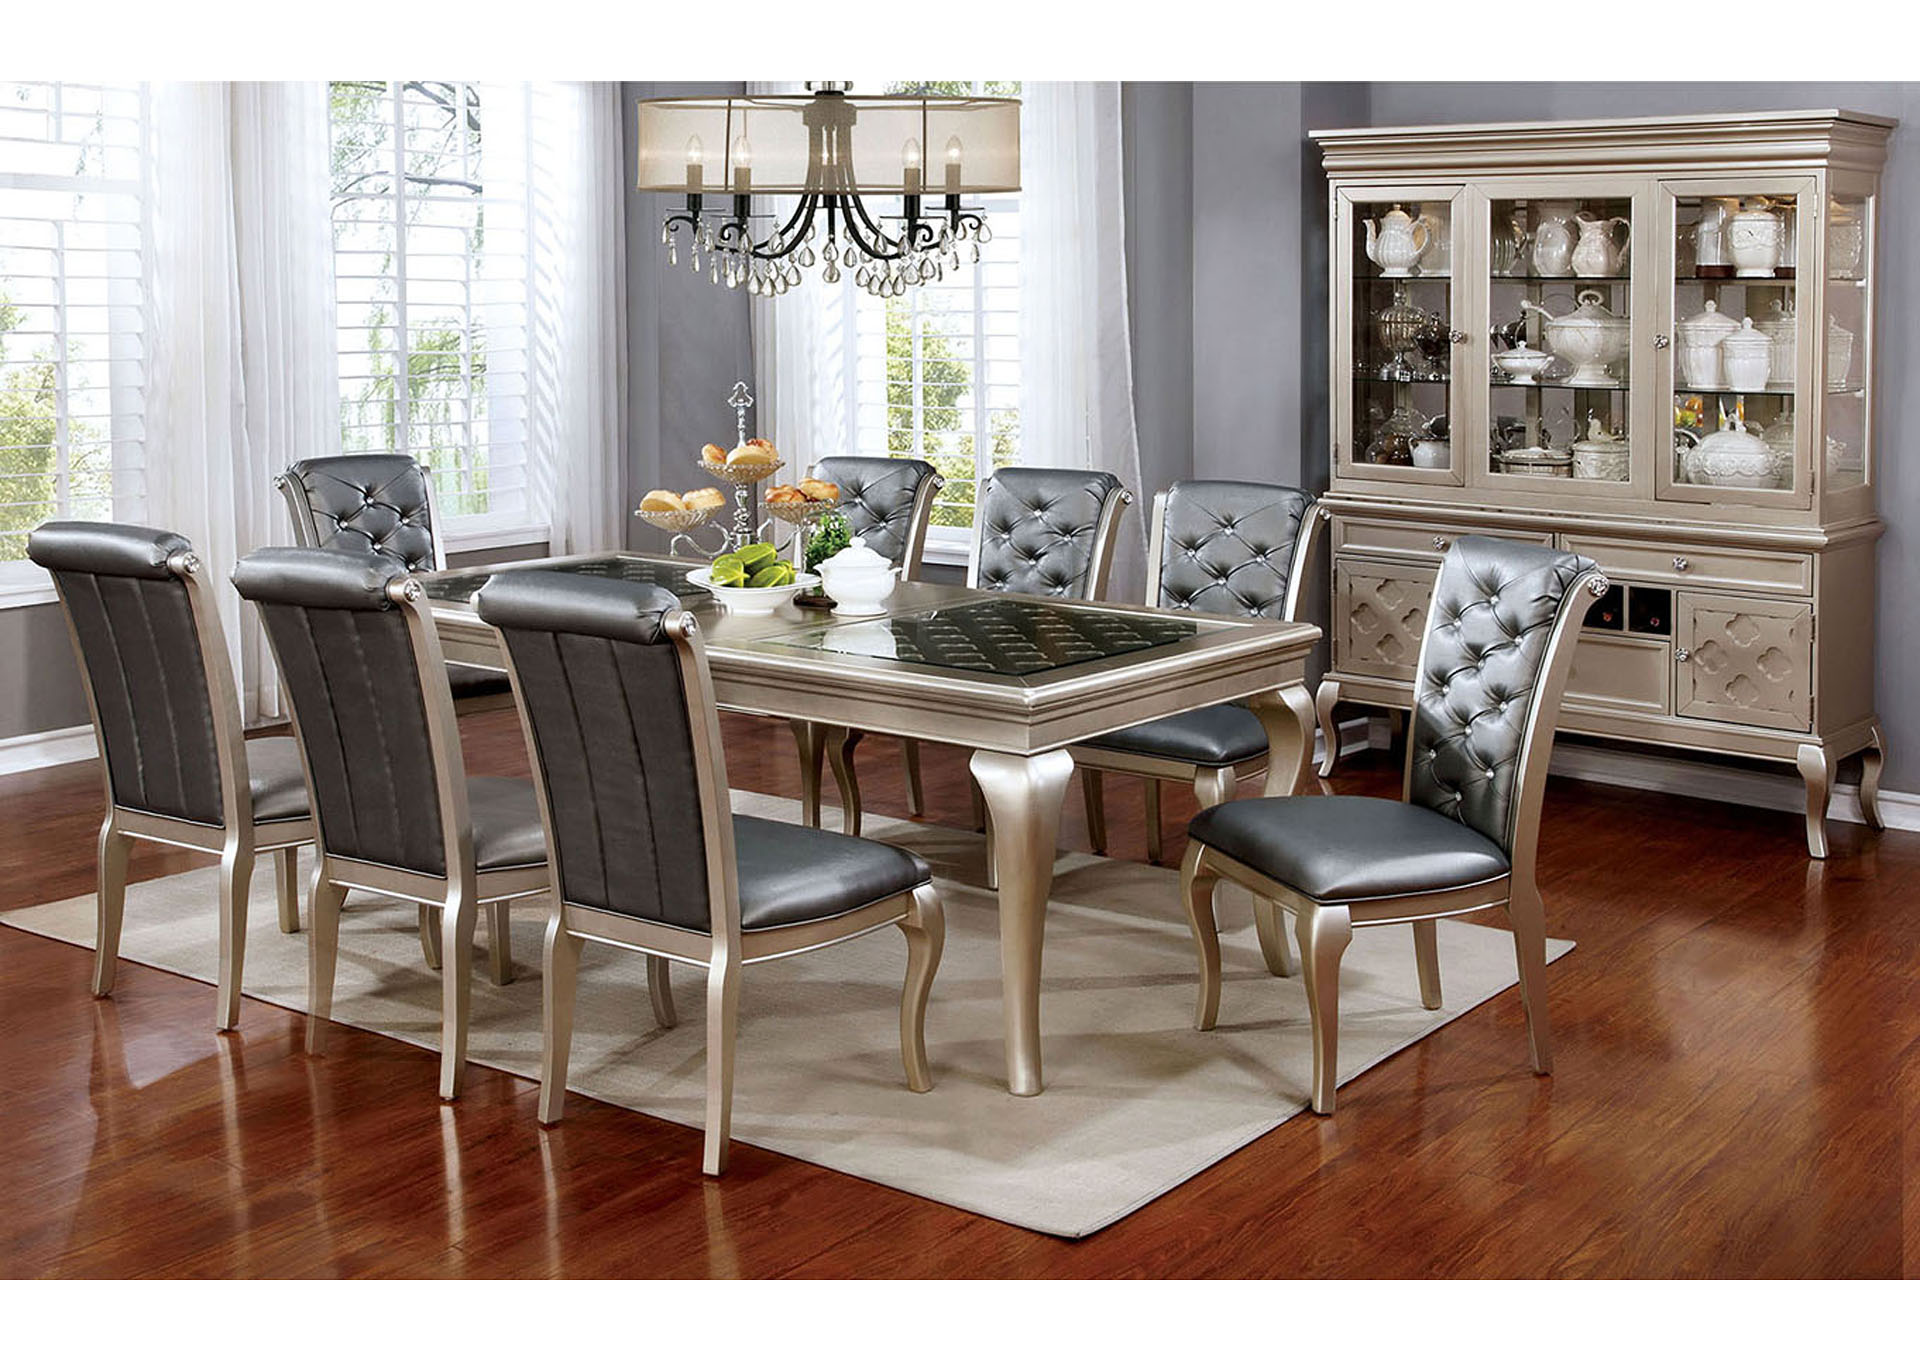 amina silver dining table w4 side chairsfurniture of america - Silver Dining Room Interior